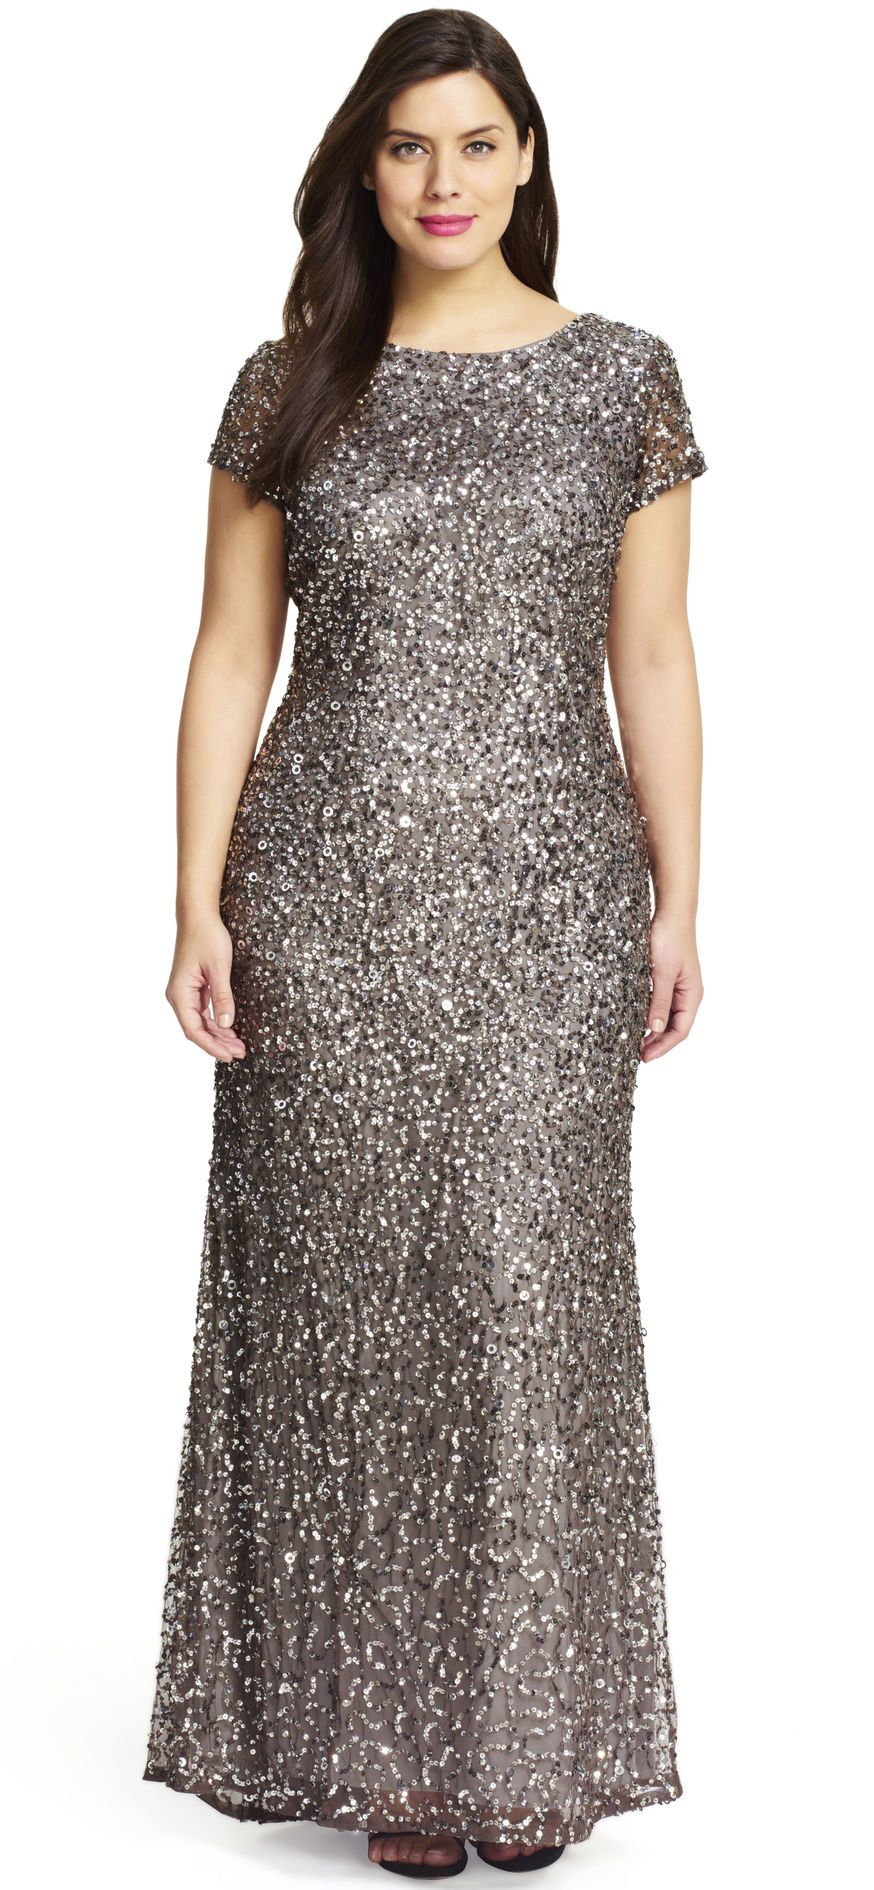 Scoop Back Sequin Gown - Formal dresses for women, Elegant dresses, Sequin gown, Sequin evening dresses, Formal dresses, Formal dresses long - Unleash the glamour at your next formal event in this striking sequin evening dress  This gorgeous sequin gown is filled with fabulous features, including short sleeves, a long, flowing soft skirt, a crew neck and a scoop back with a subtle back zipper closure  Allover embellishment and showstopping train detail renders this special occasion dress one of a kind  Pair this stunning short sleeve sequin gown with a bold, red lip and strappy heels to steal the show